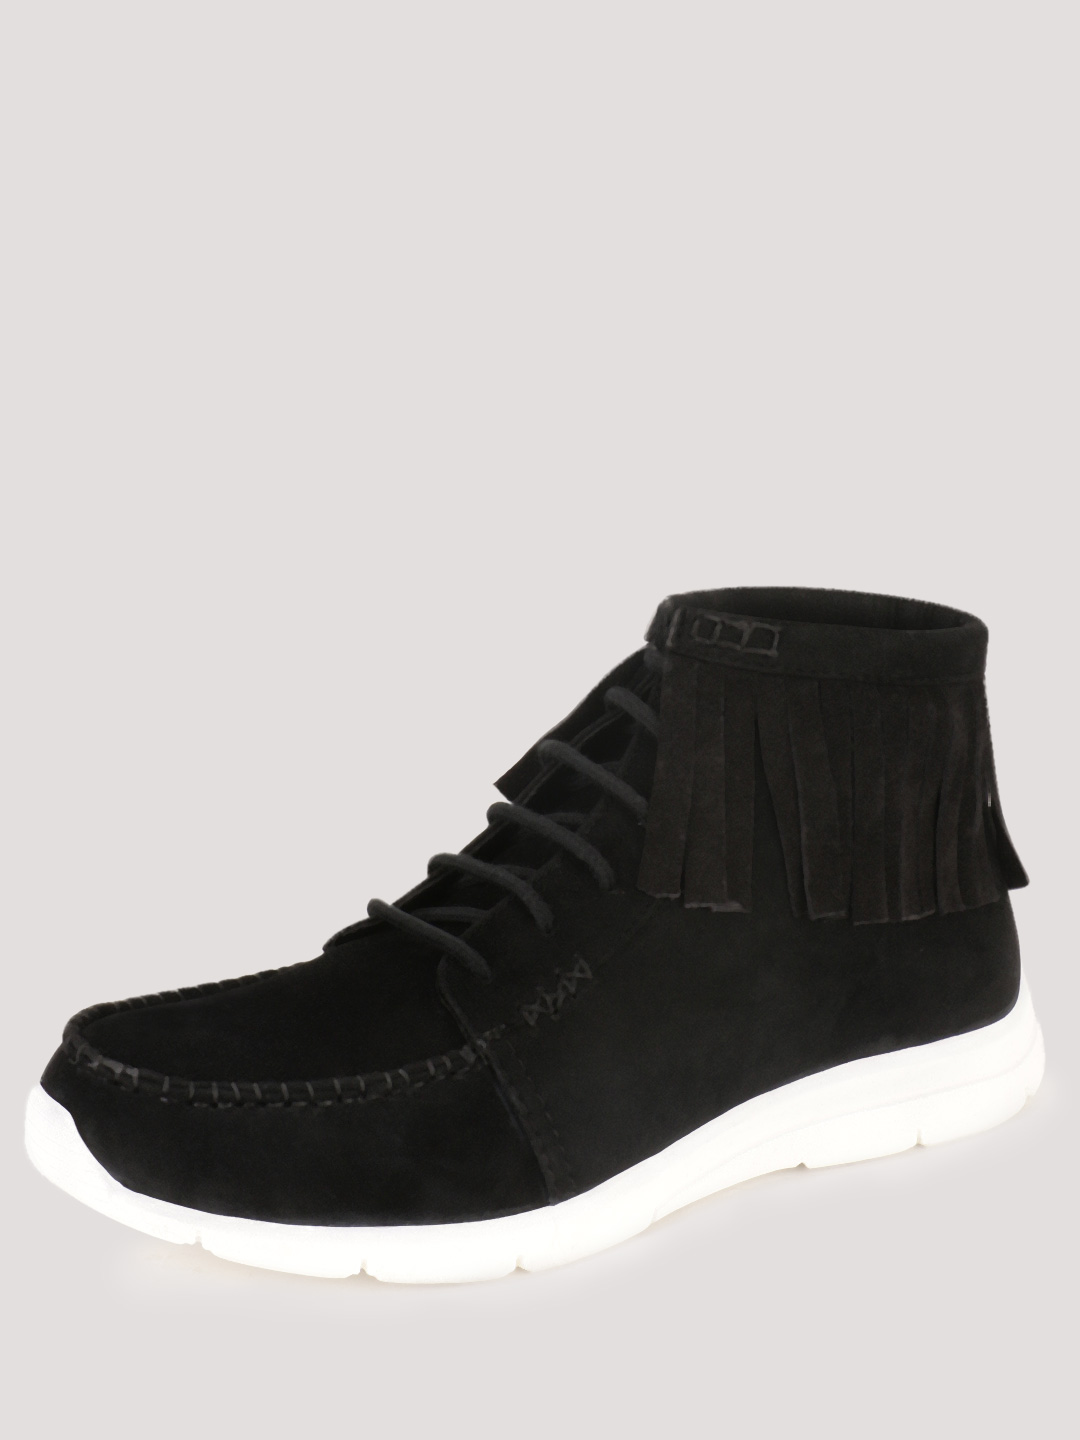 KOOVS Black Fringed Ankle Boots 1